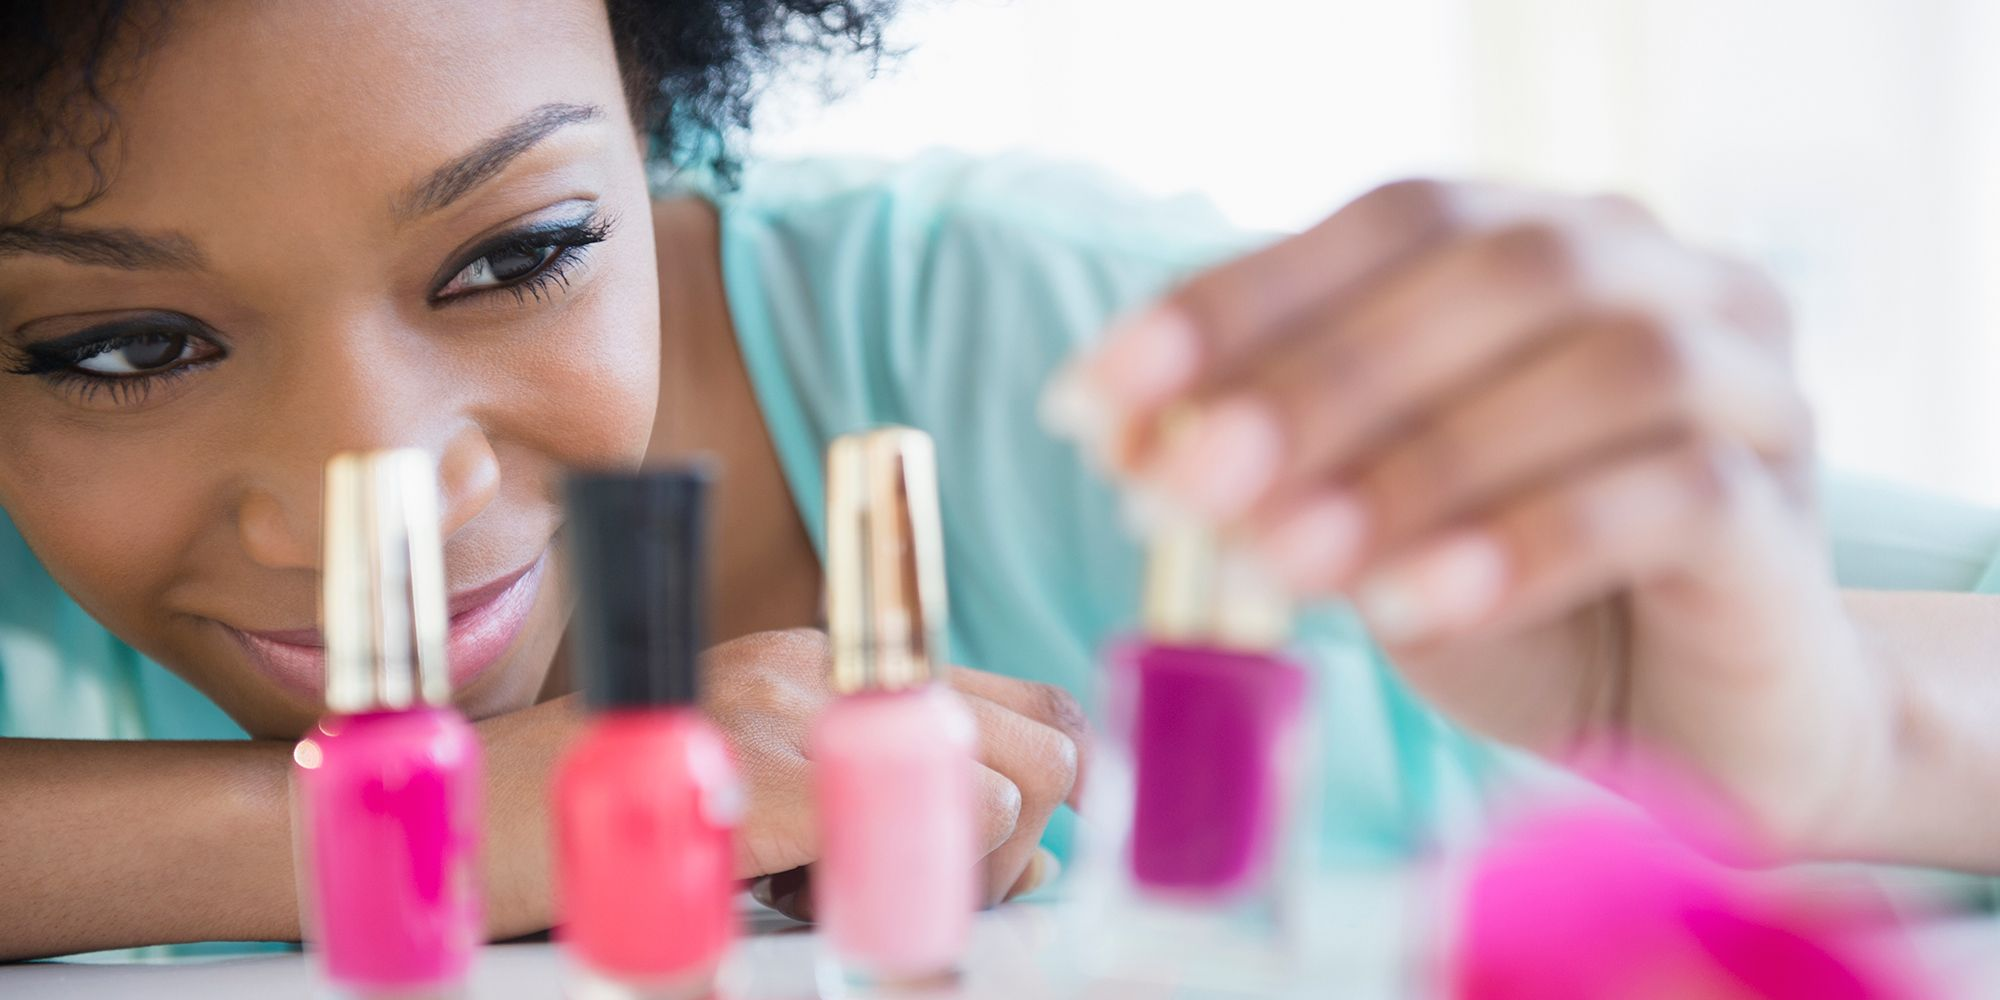 Fancy earning £35k a year testing nail polishes?